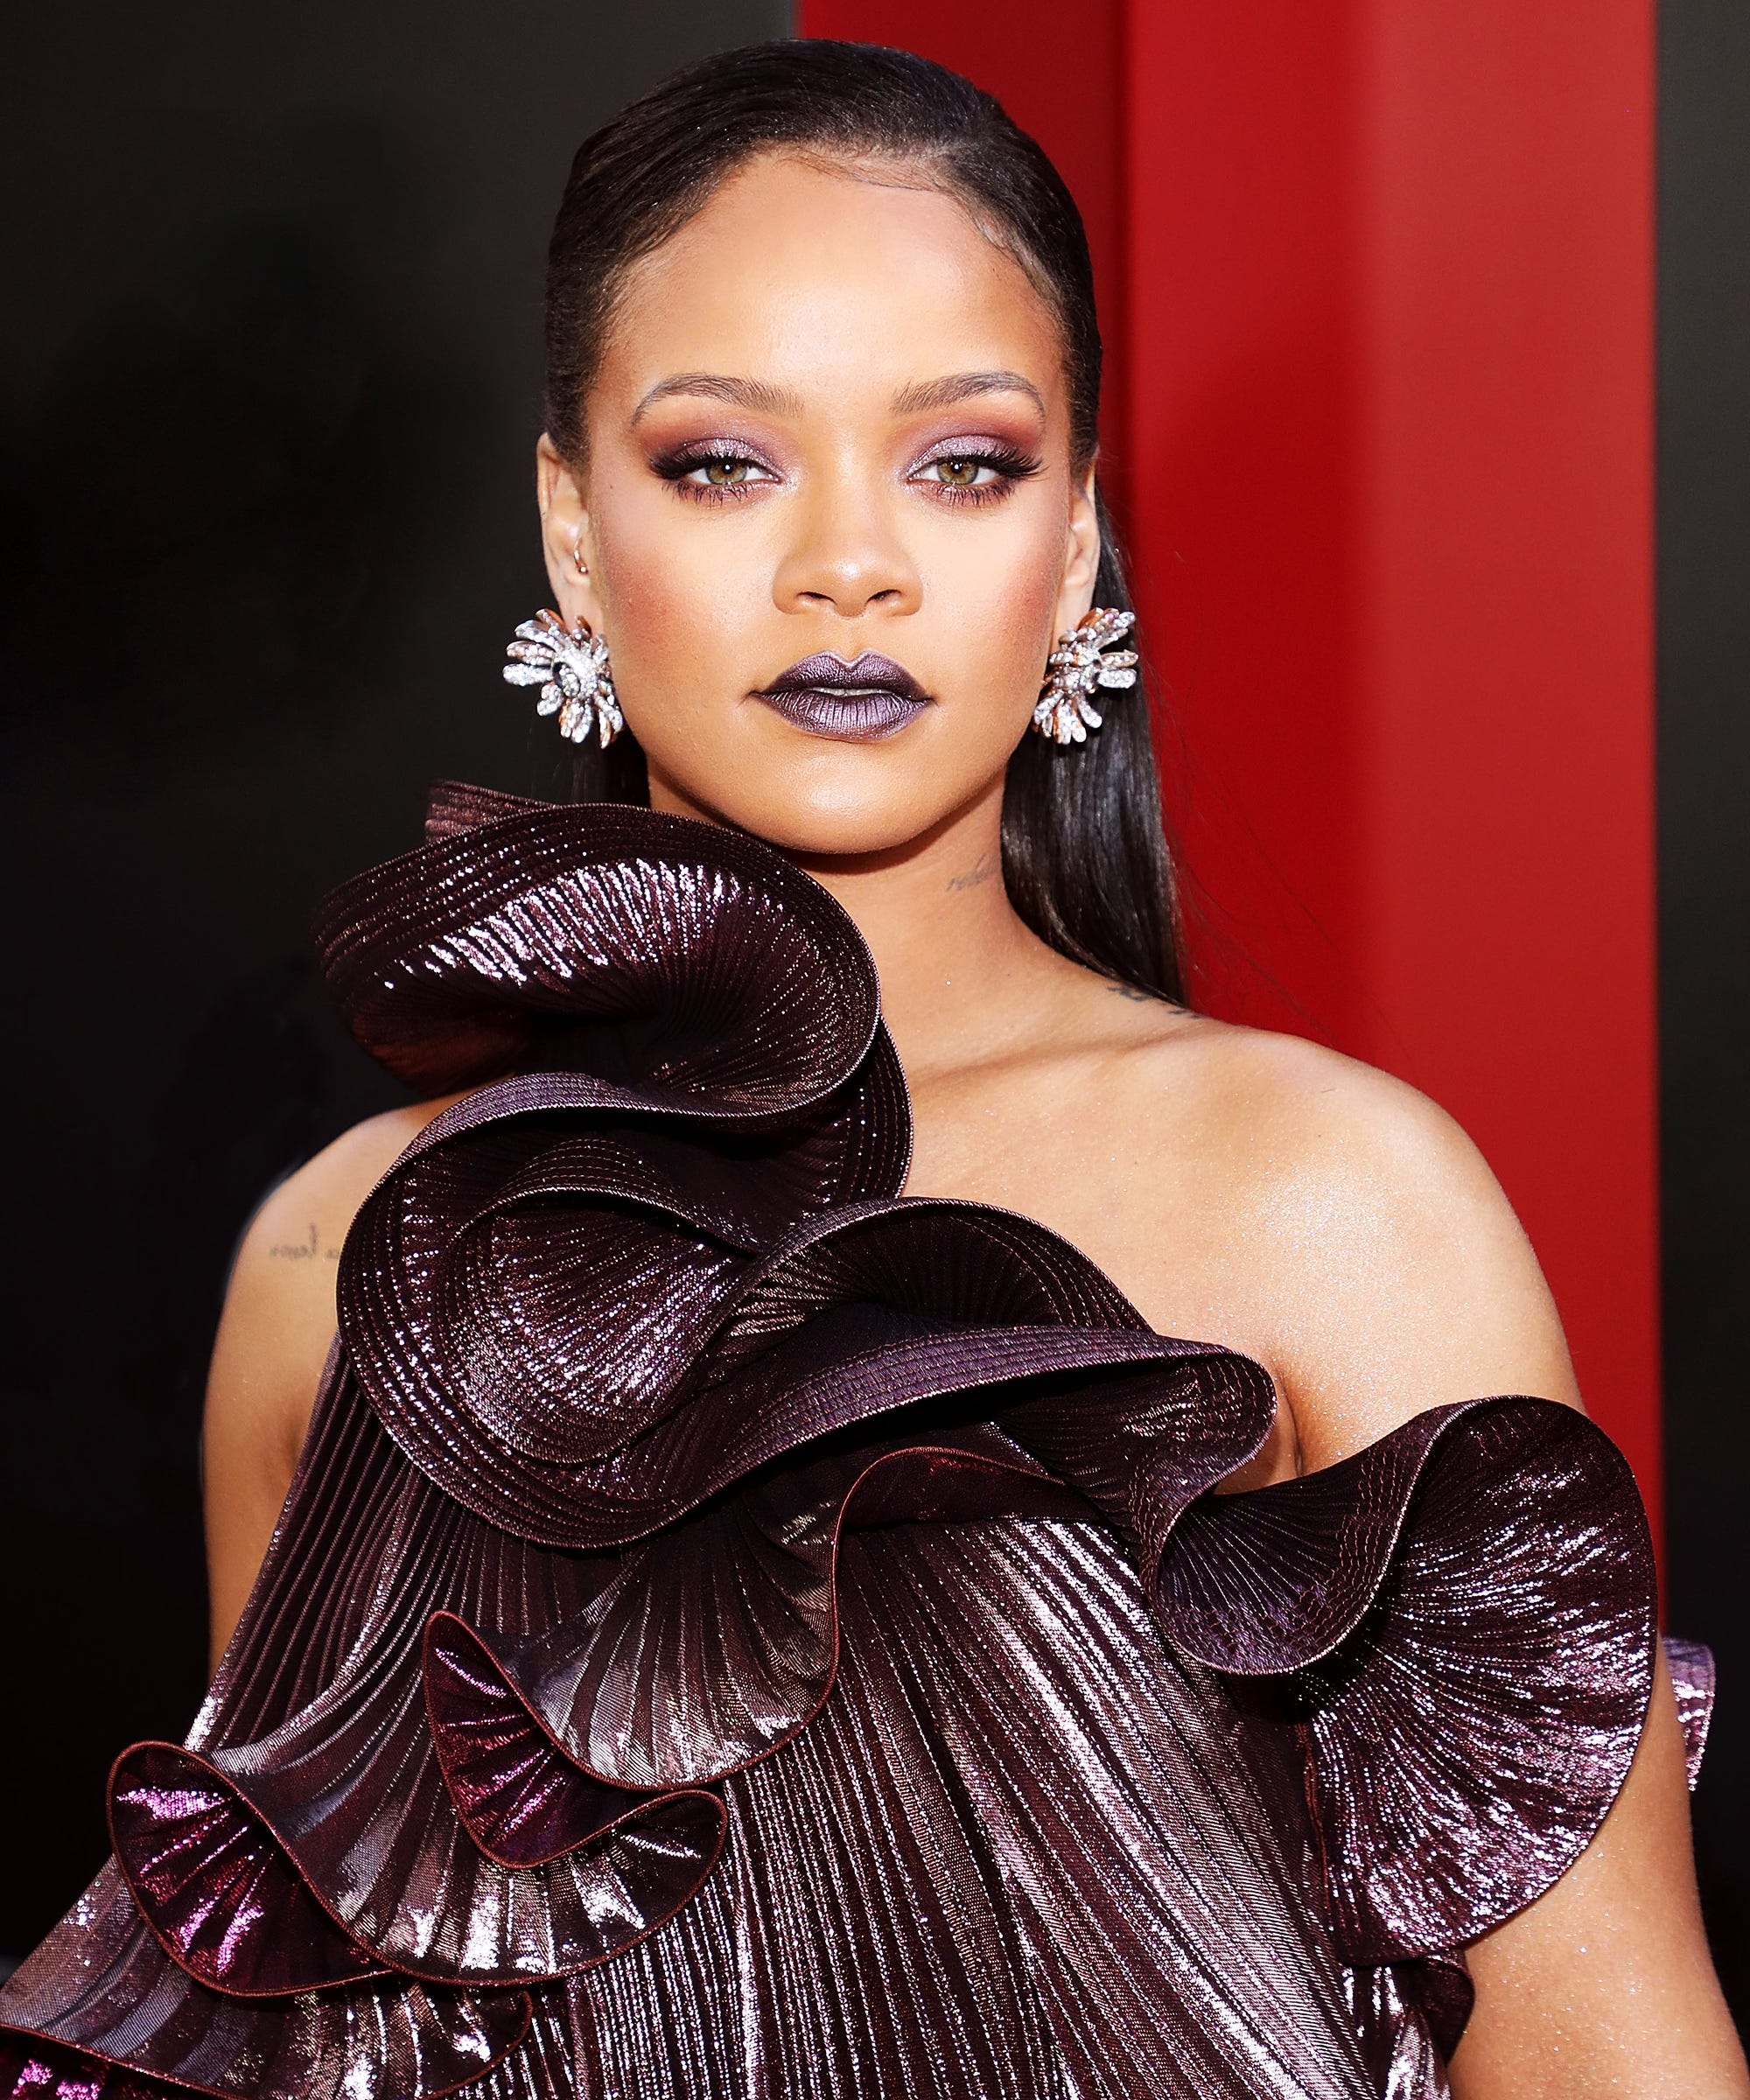 Rihannas Best Long And Short Hairstyles Over The Years